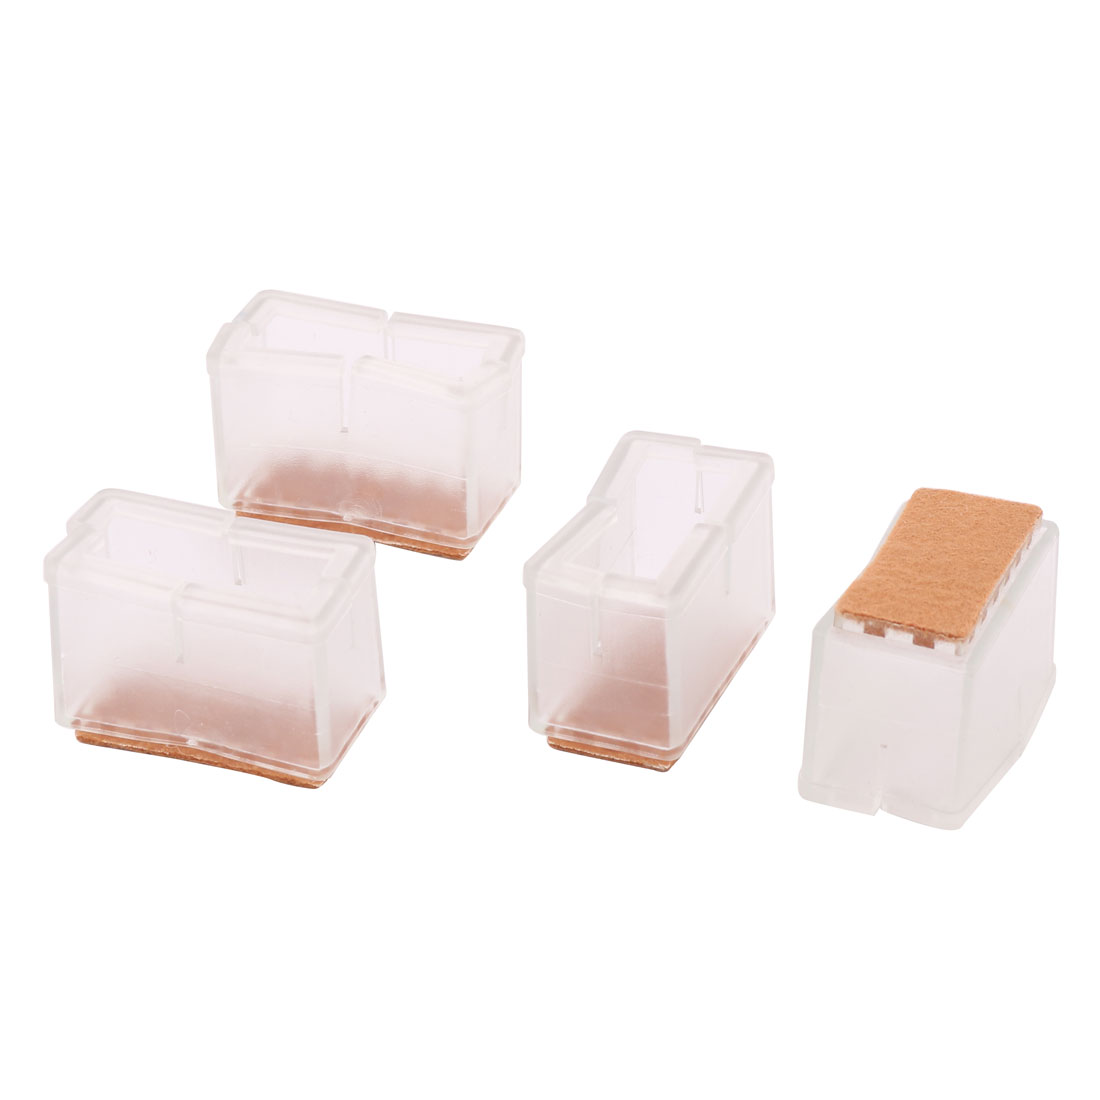 Home Furniture Rubber Rectangle Shape Floor Protector Table Chair Leg Cover Cap 4 Pcs